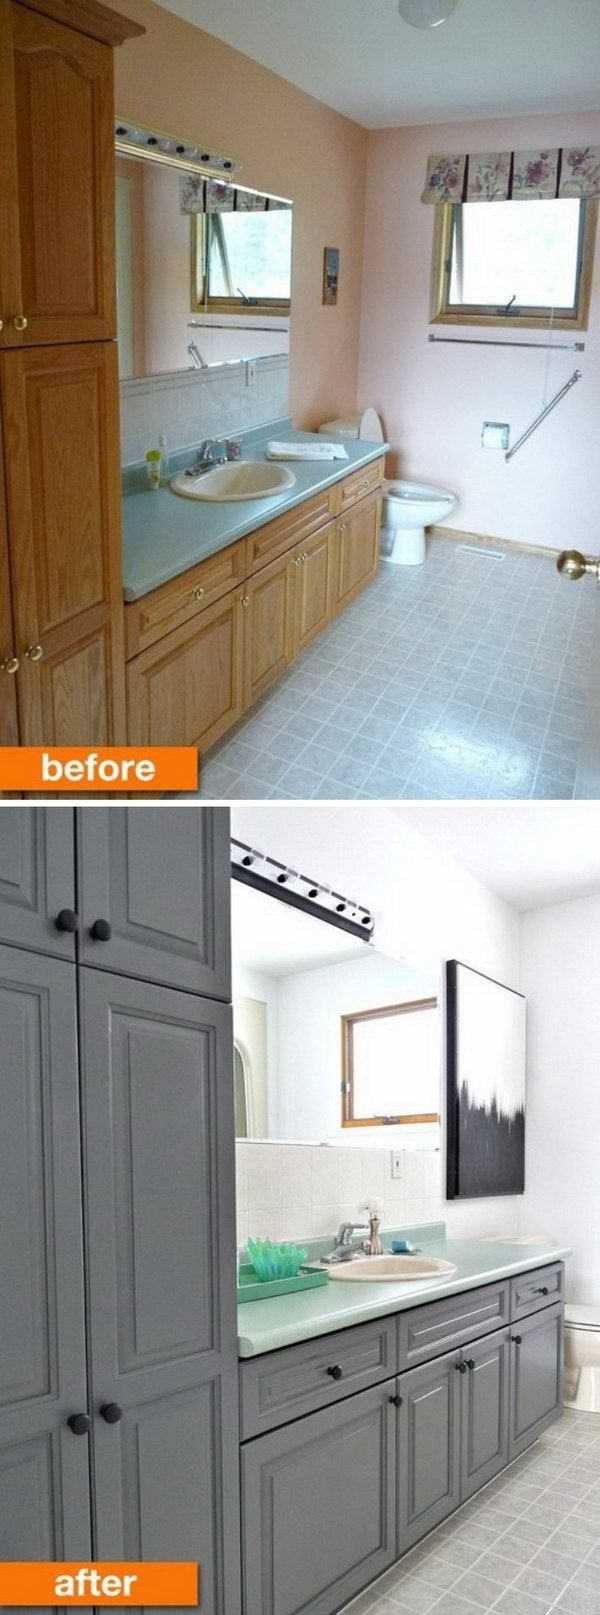 Cheap bathroom remodel before and after - Before And After Makeovers 23 Most Beautiful Bathroom Remodeling Ideas